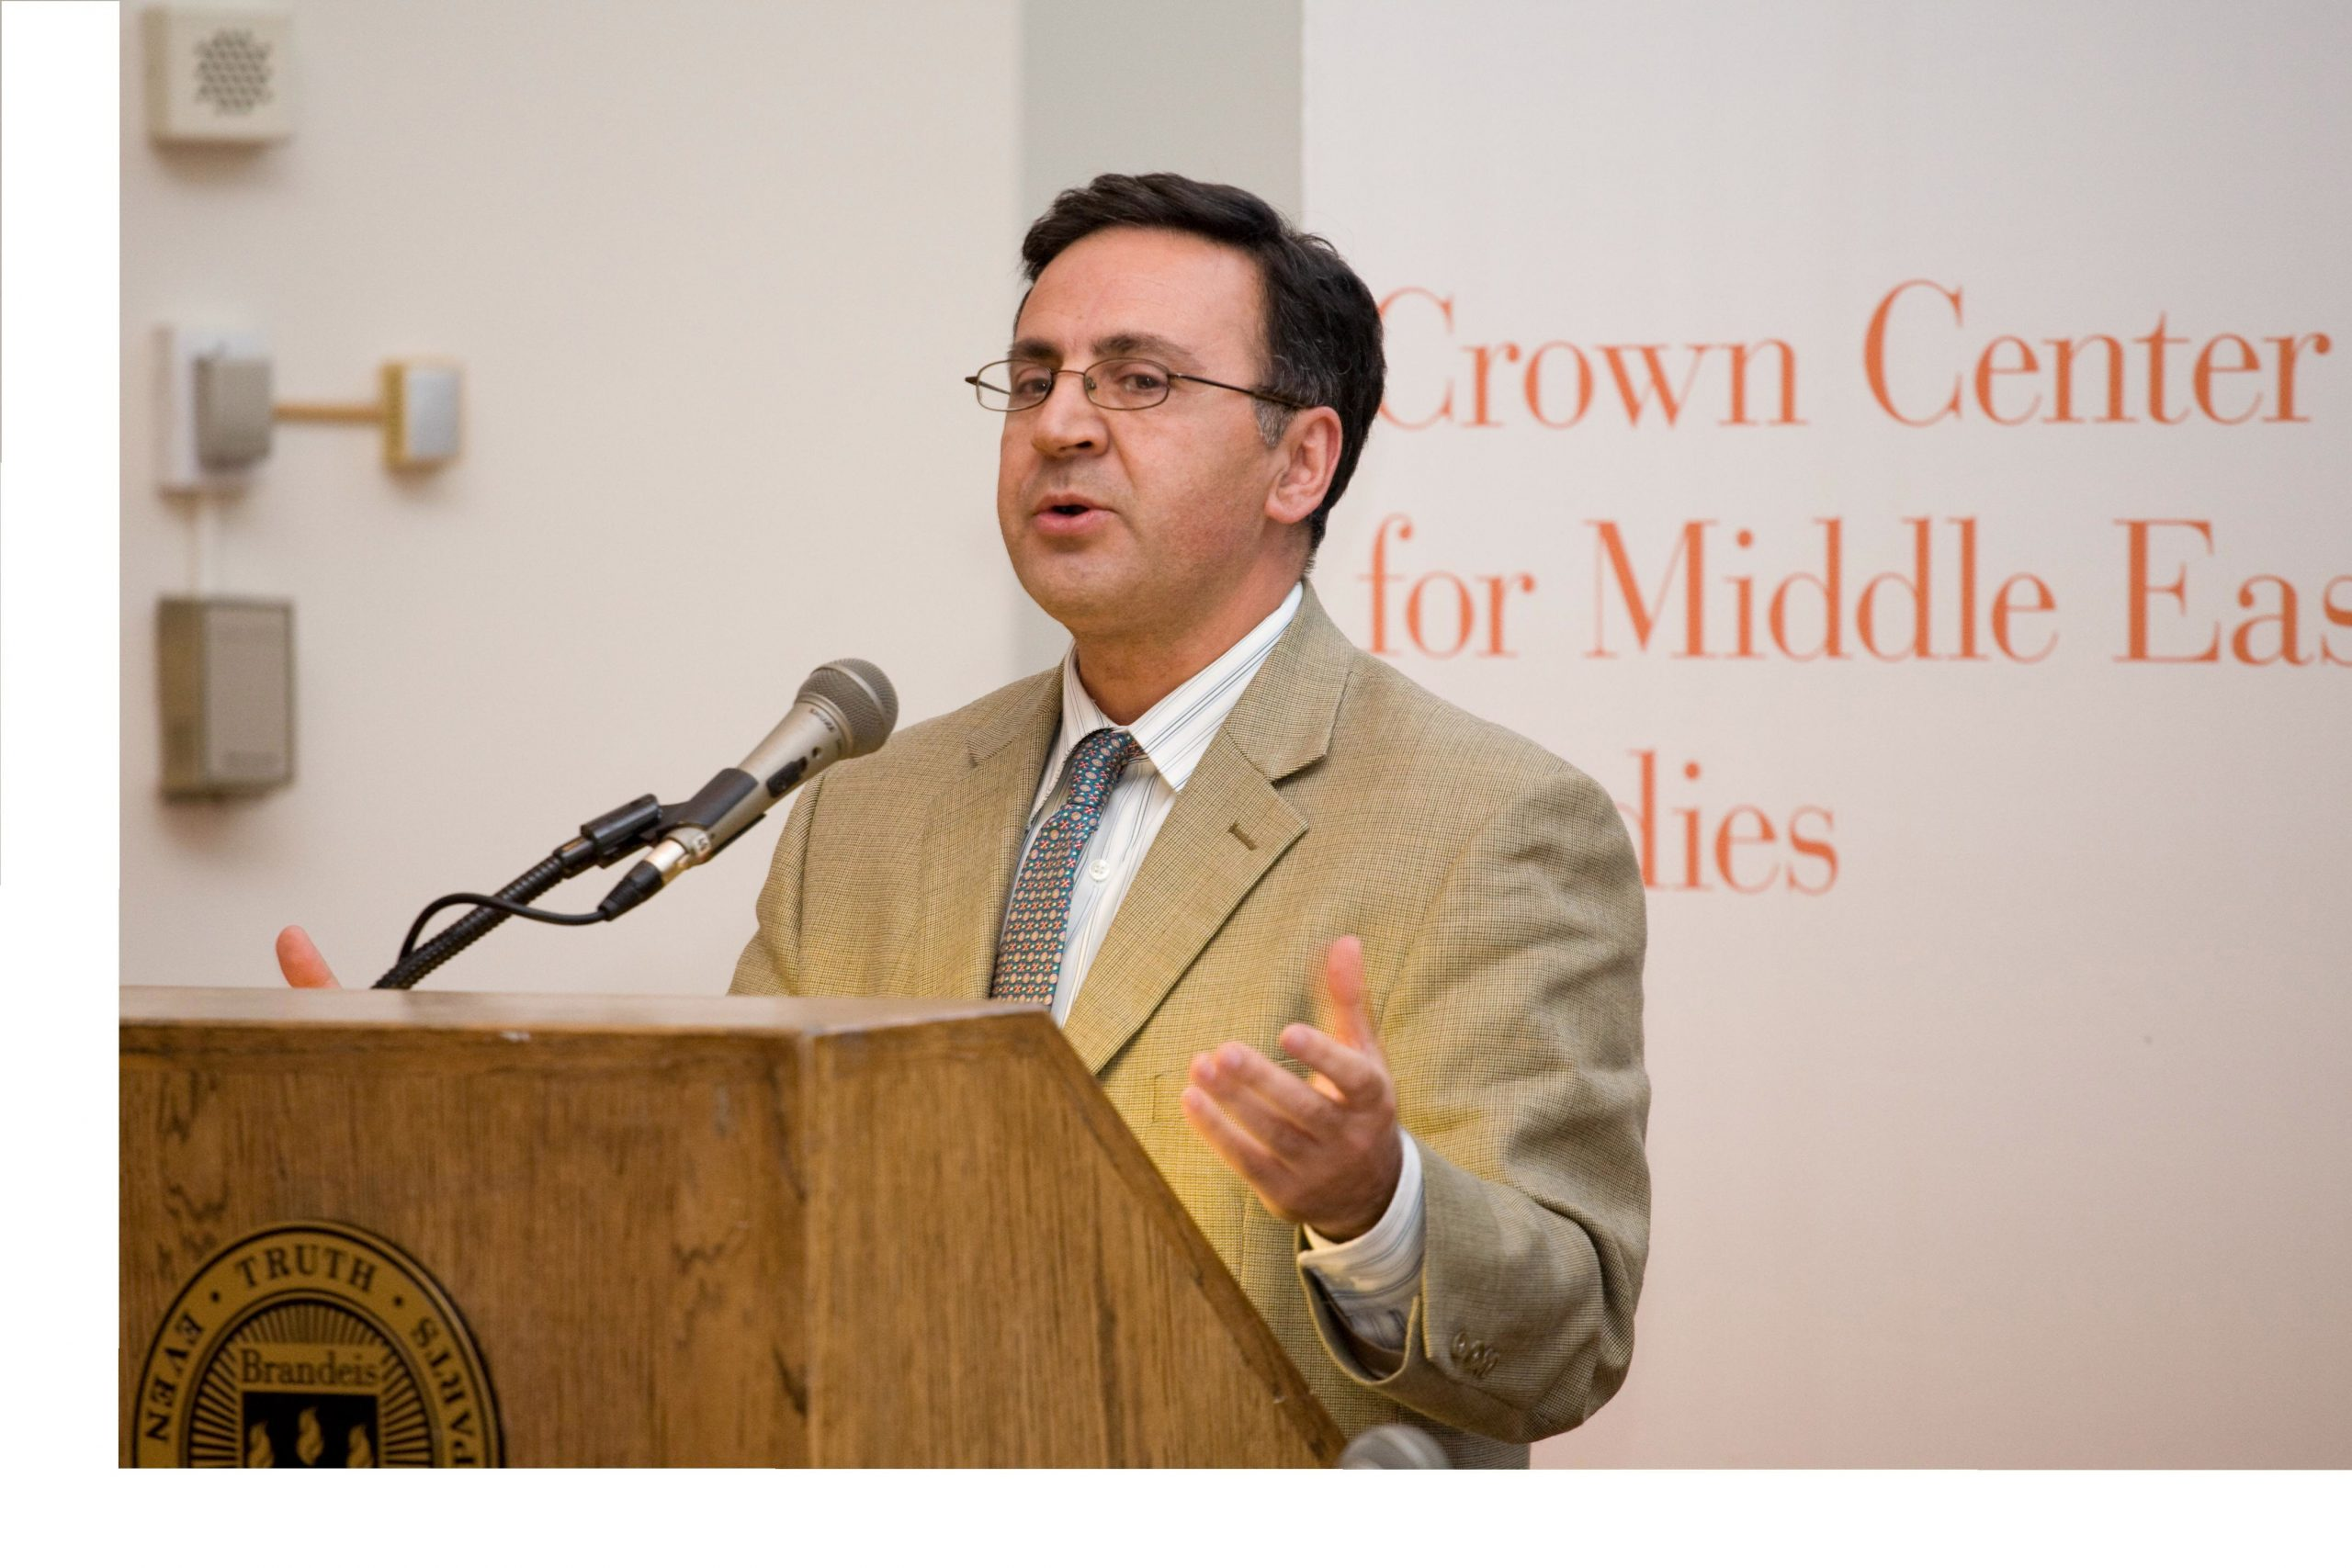 Dr. Nader Habibi of Brandeis University will give a community talk examining the current economic and political situation inside the Islamic Republic of Iran on Saturday, Sept. 19.